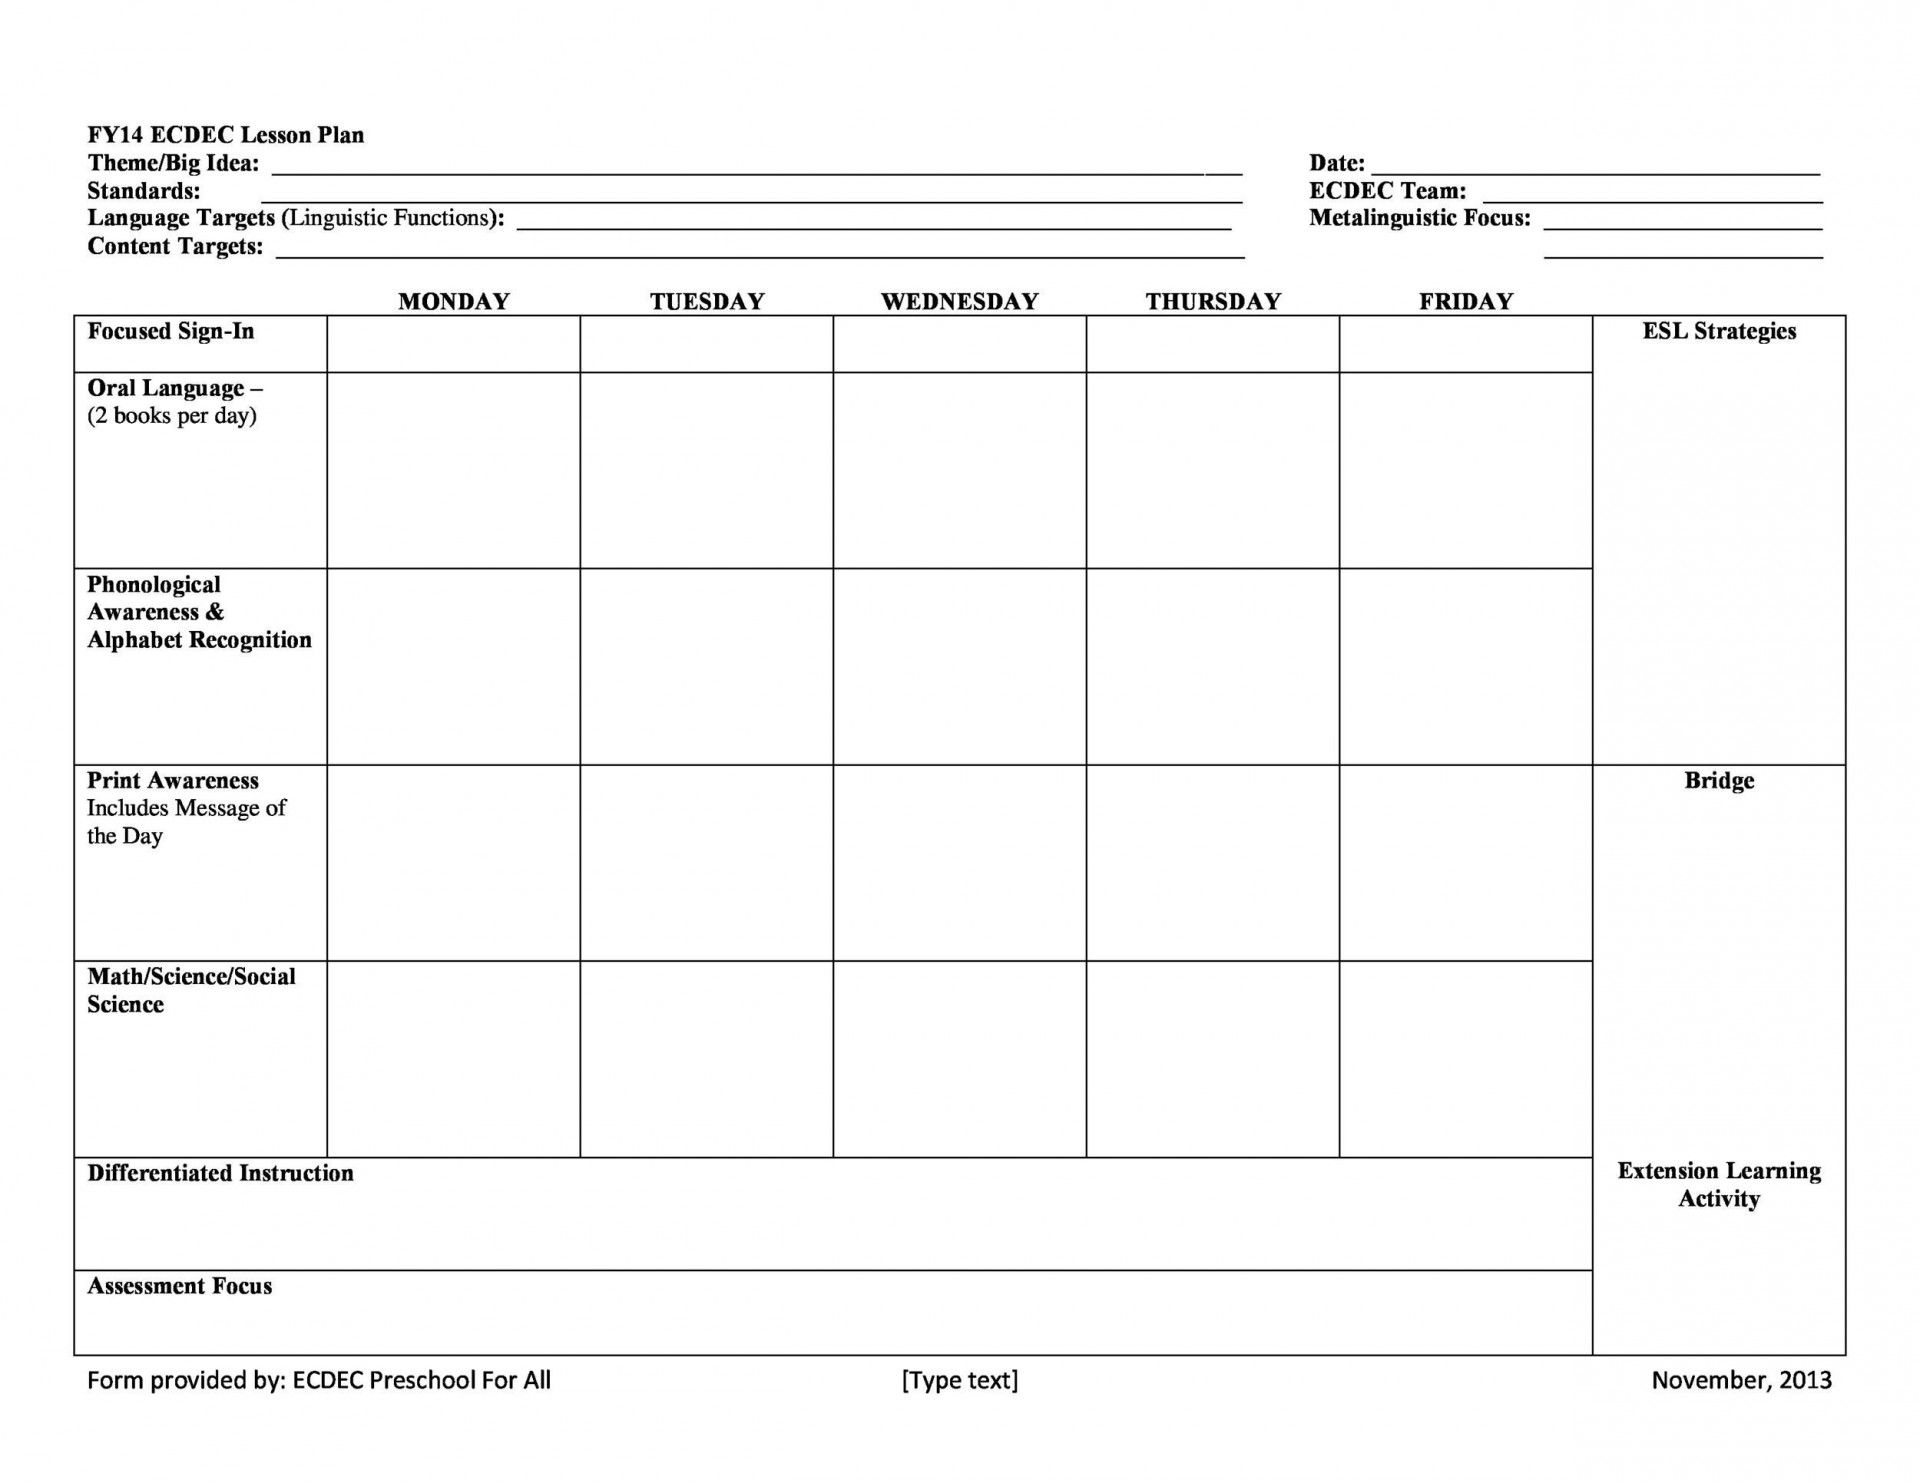 002 Shocking Free Printable Lesson Plan Template Blank Highest Quality  FormatFull